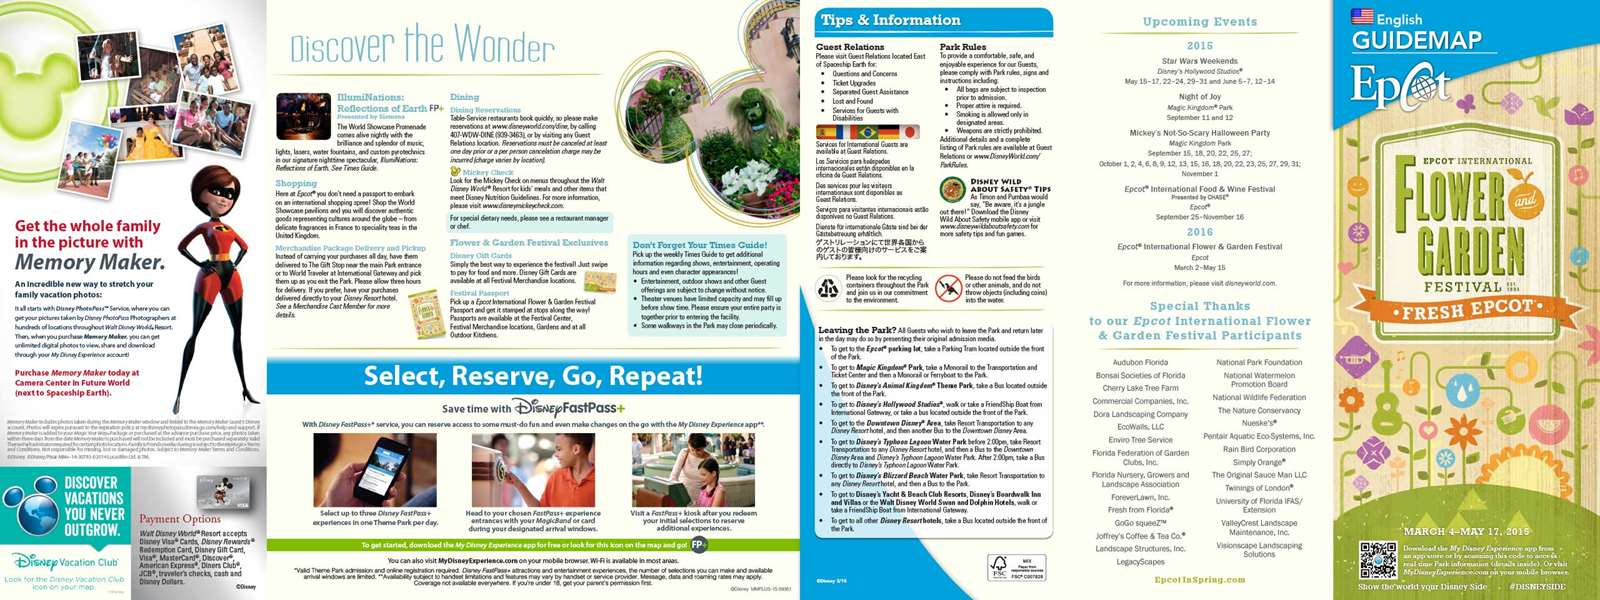 2015 epcot flower and garden festival guide map - photo 1 of 2